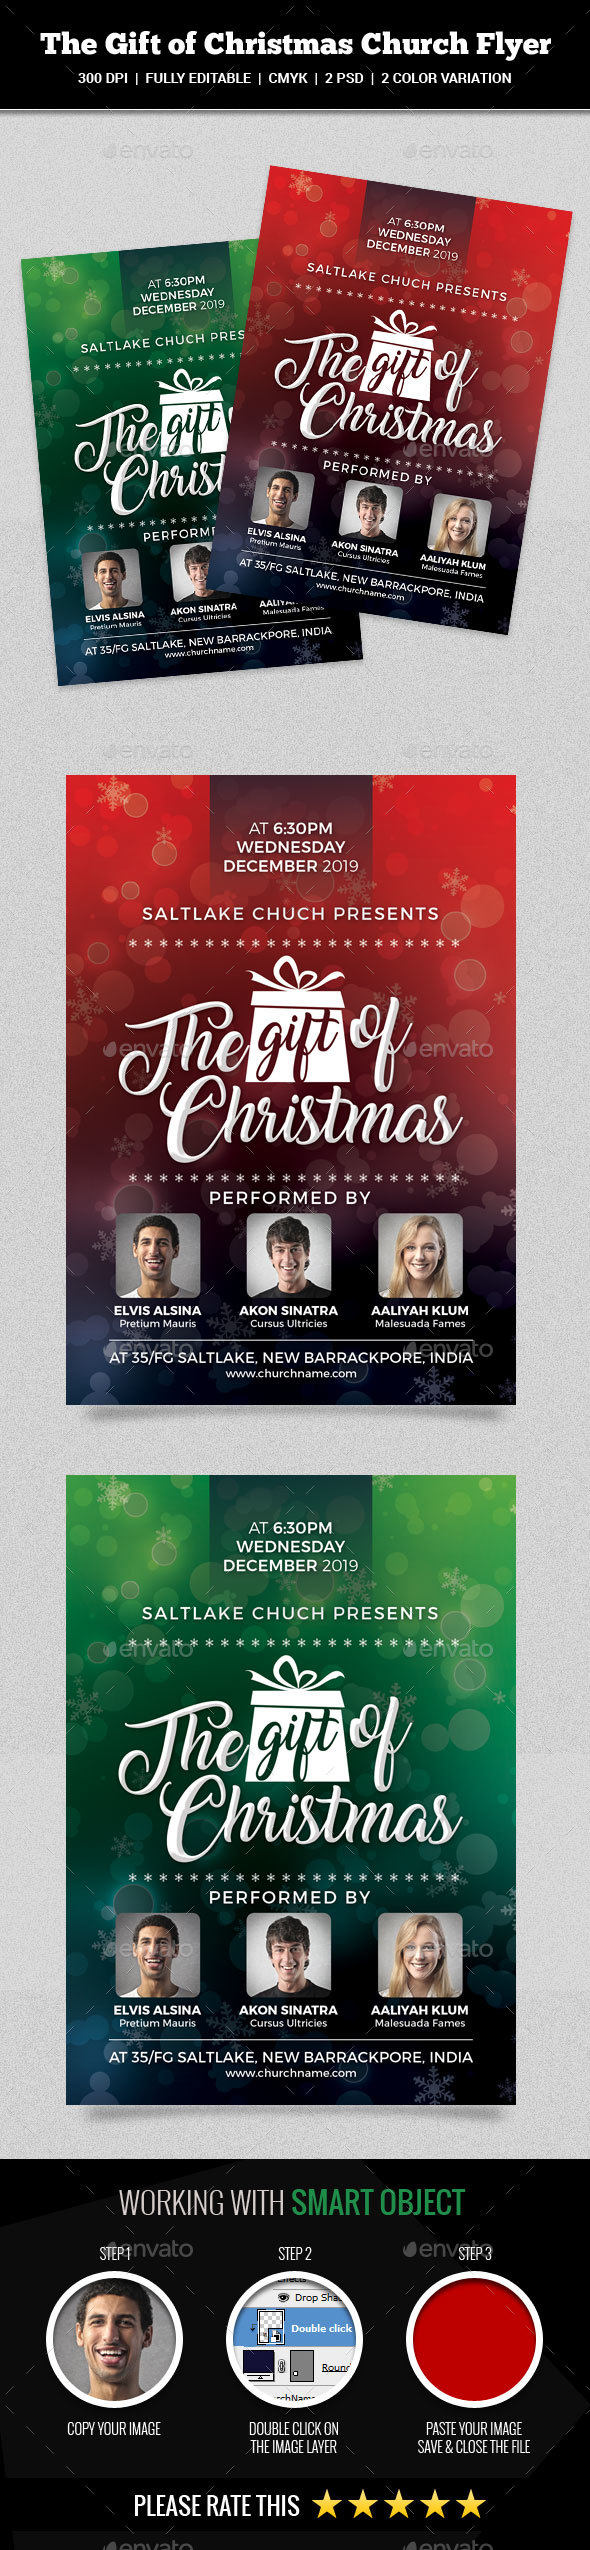 Gift of Christmas Church Flyer - Church Flyers